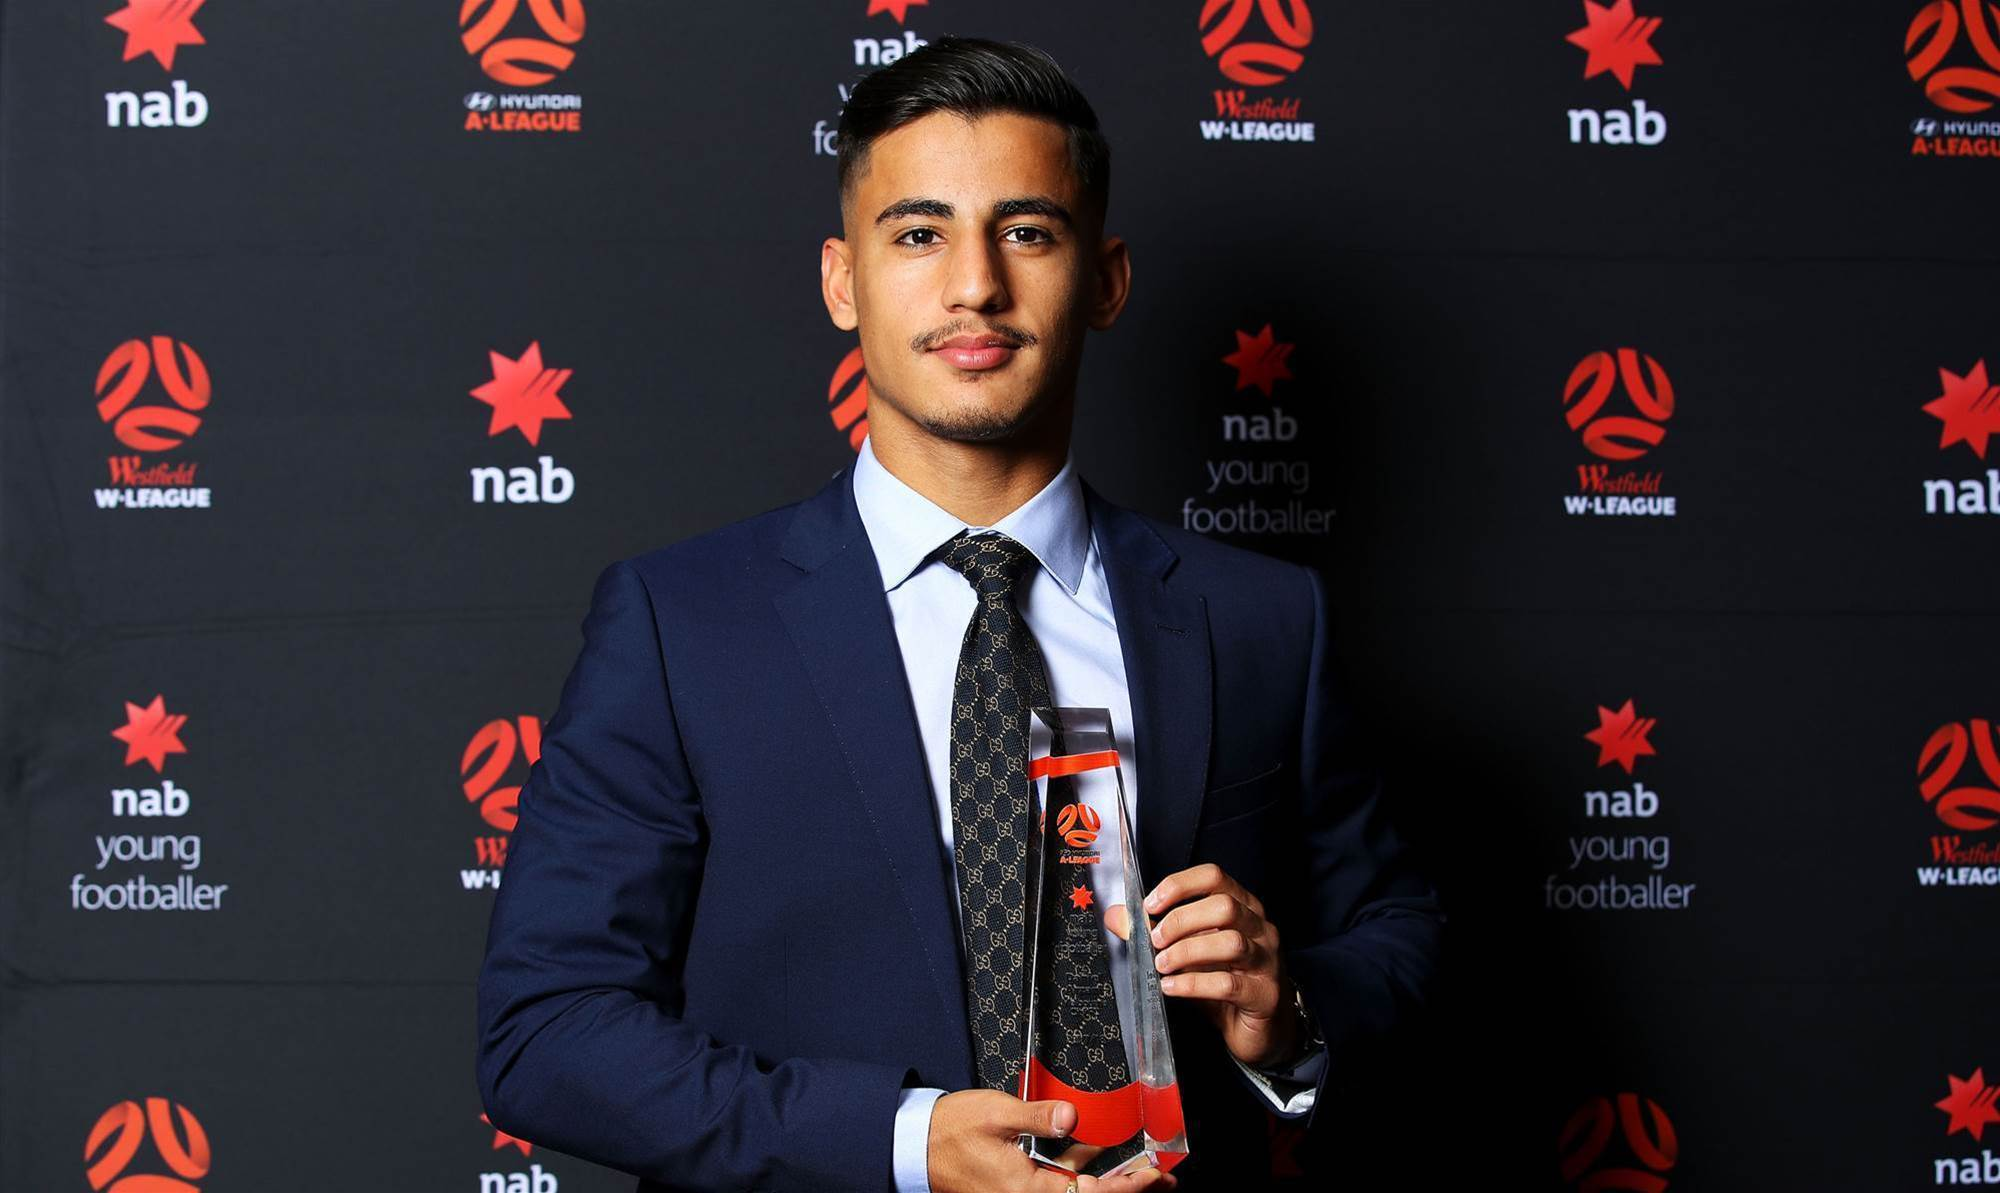 Arzani named top young footballer